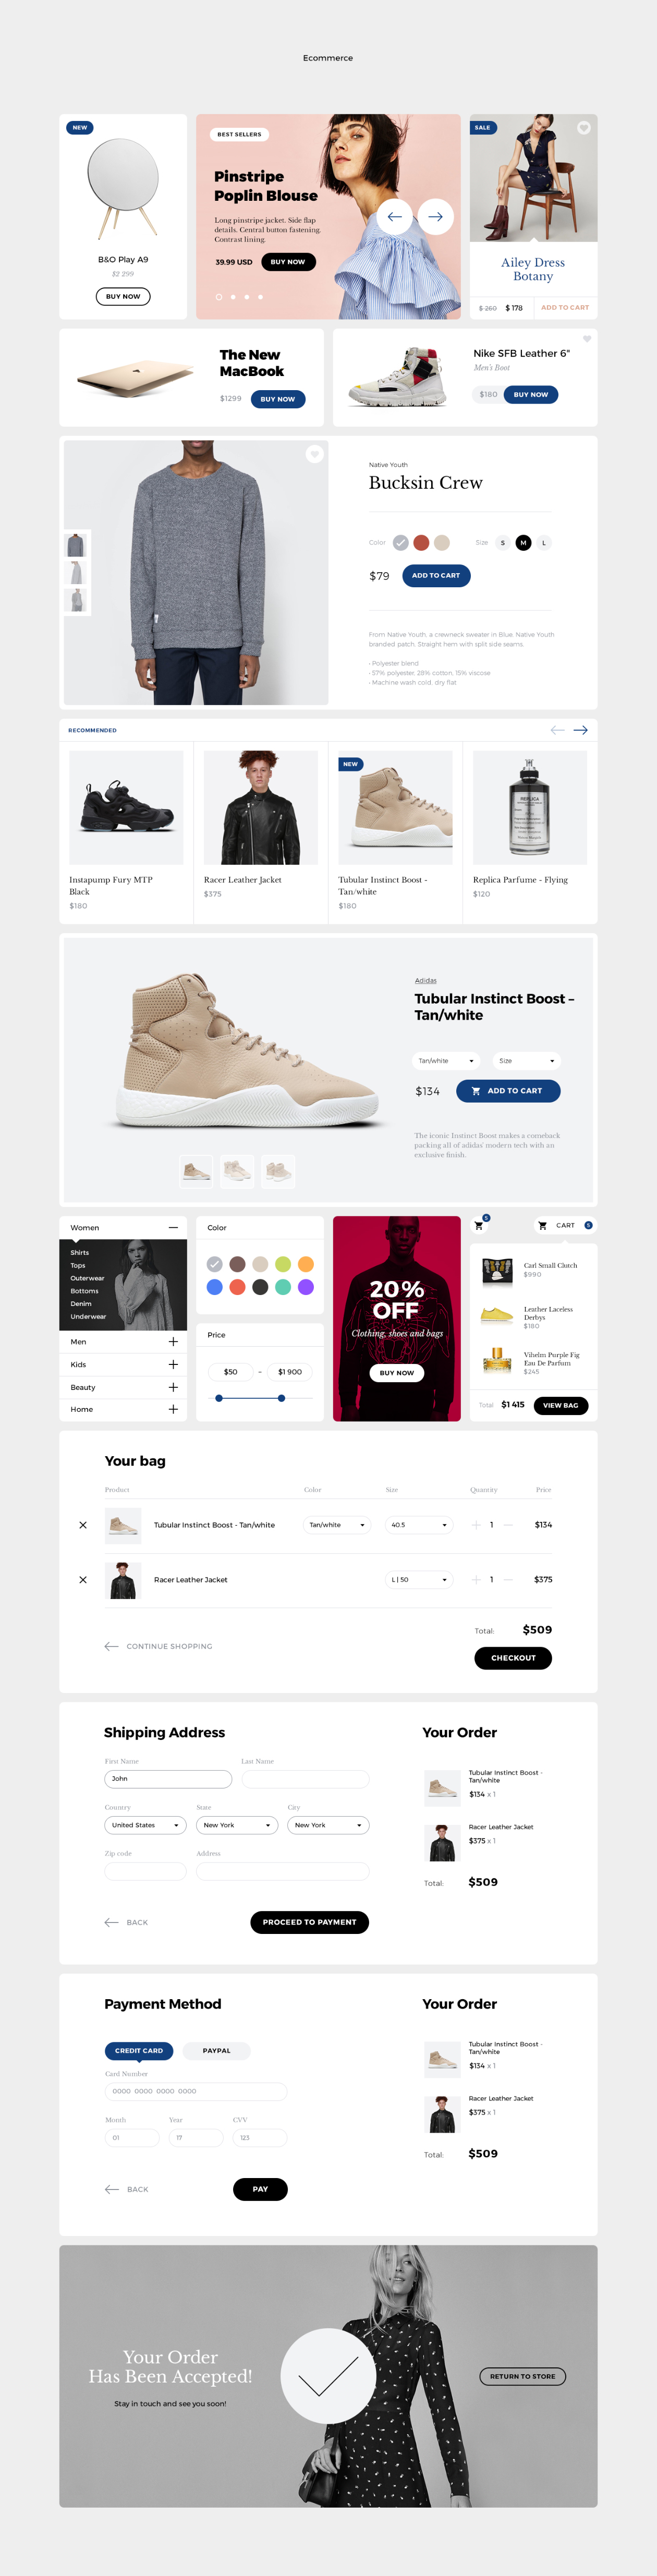 Grace - Ecommerce Ui Kit